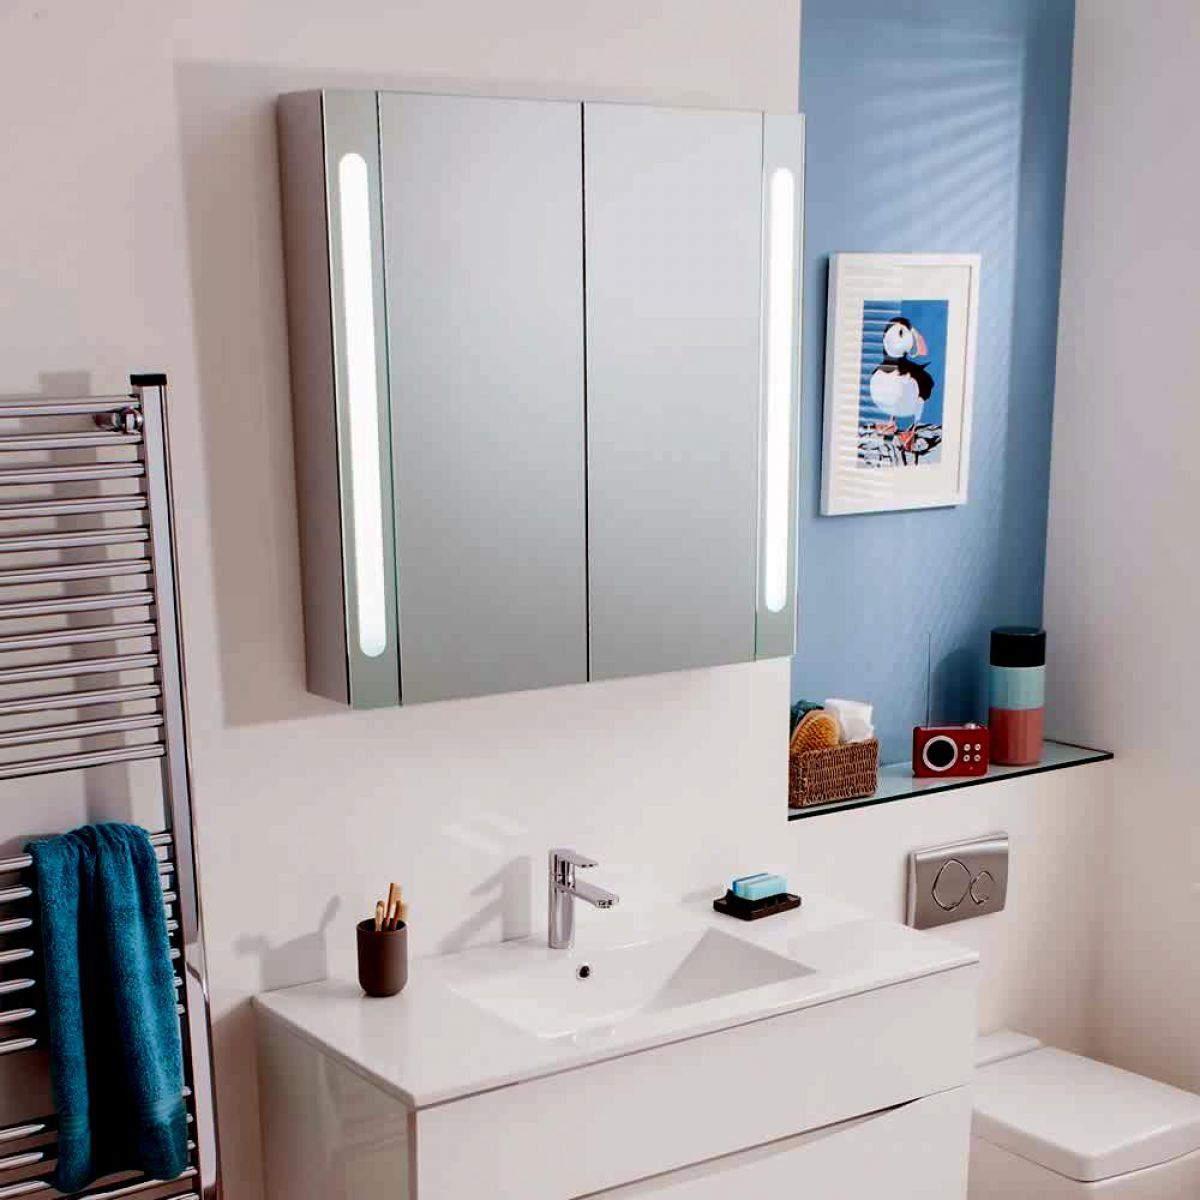 Bauhaus Kitchen Design: Bauhaus Mirrored Aluminium Wall Hung Cabinet : UK Bathrooms